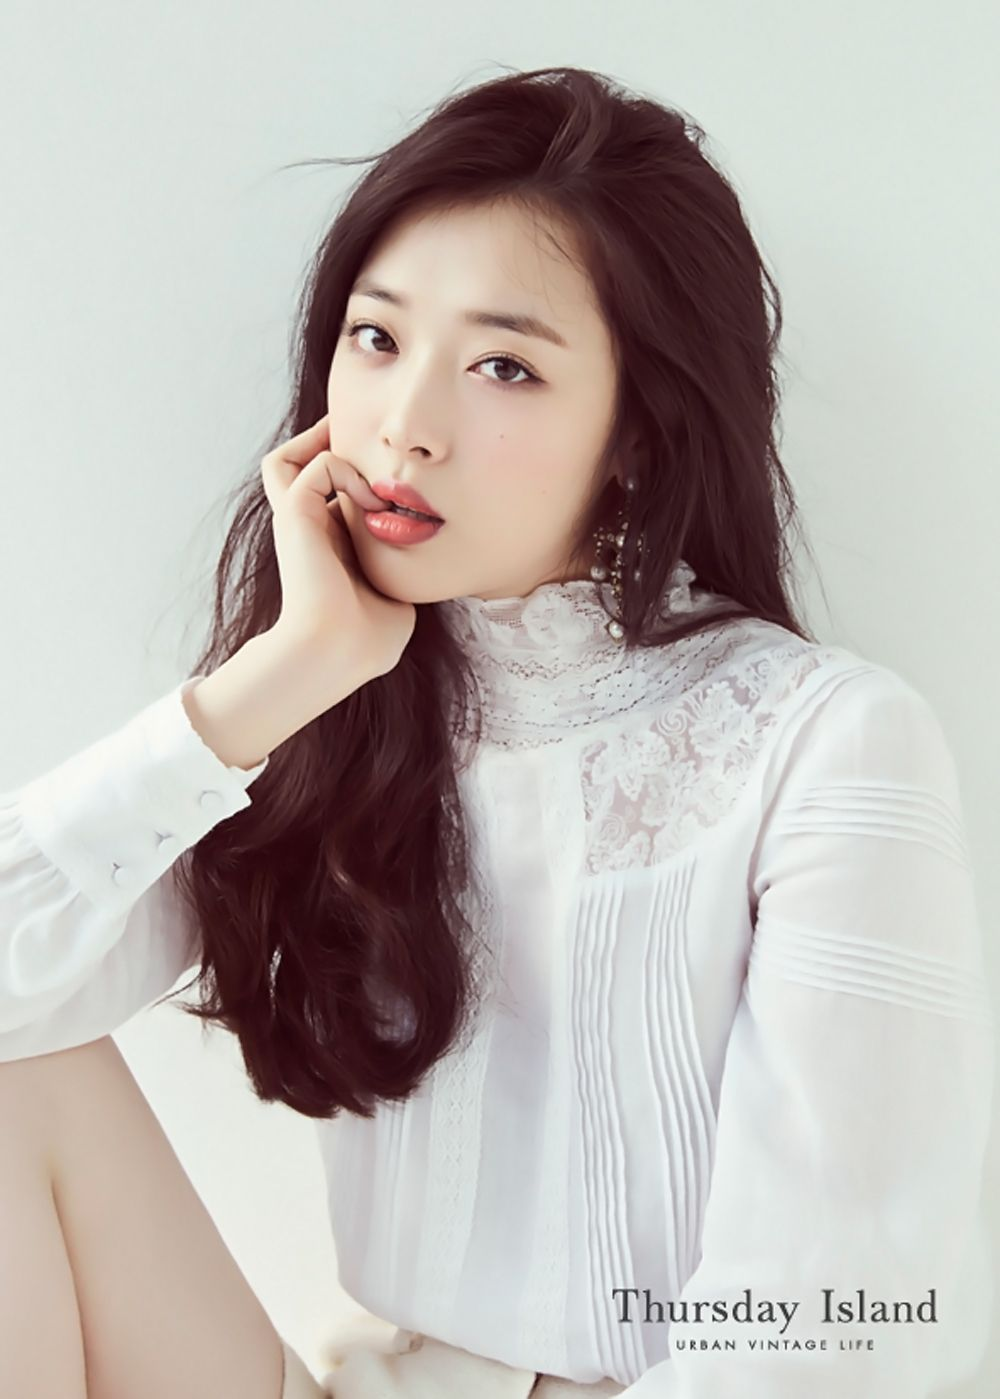 ✨ Sulli ✨ Update post! - OMONA THEY DIDN'T! Endless charms, endless possibilities ♥